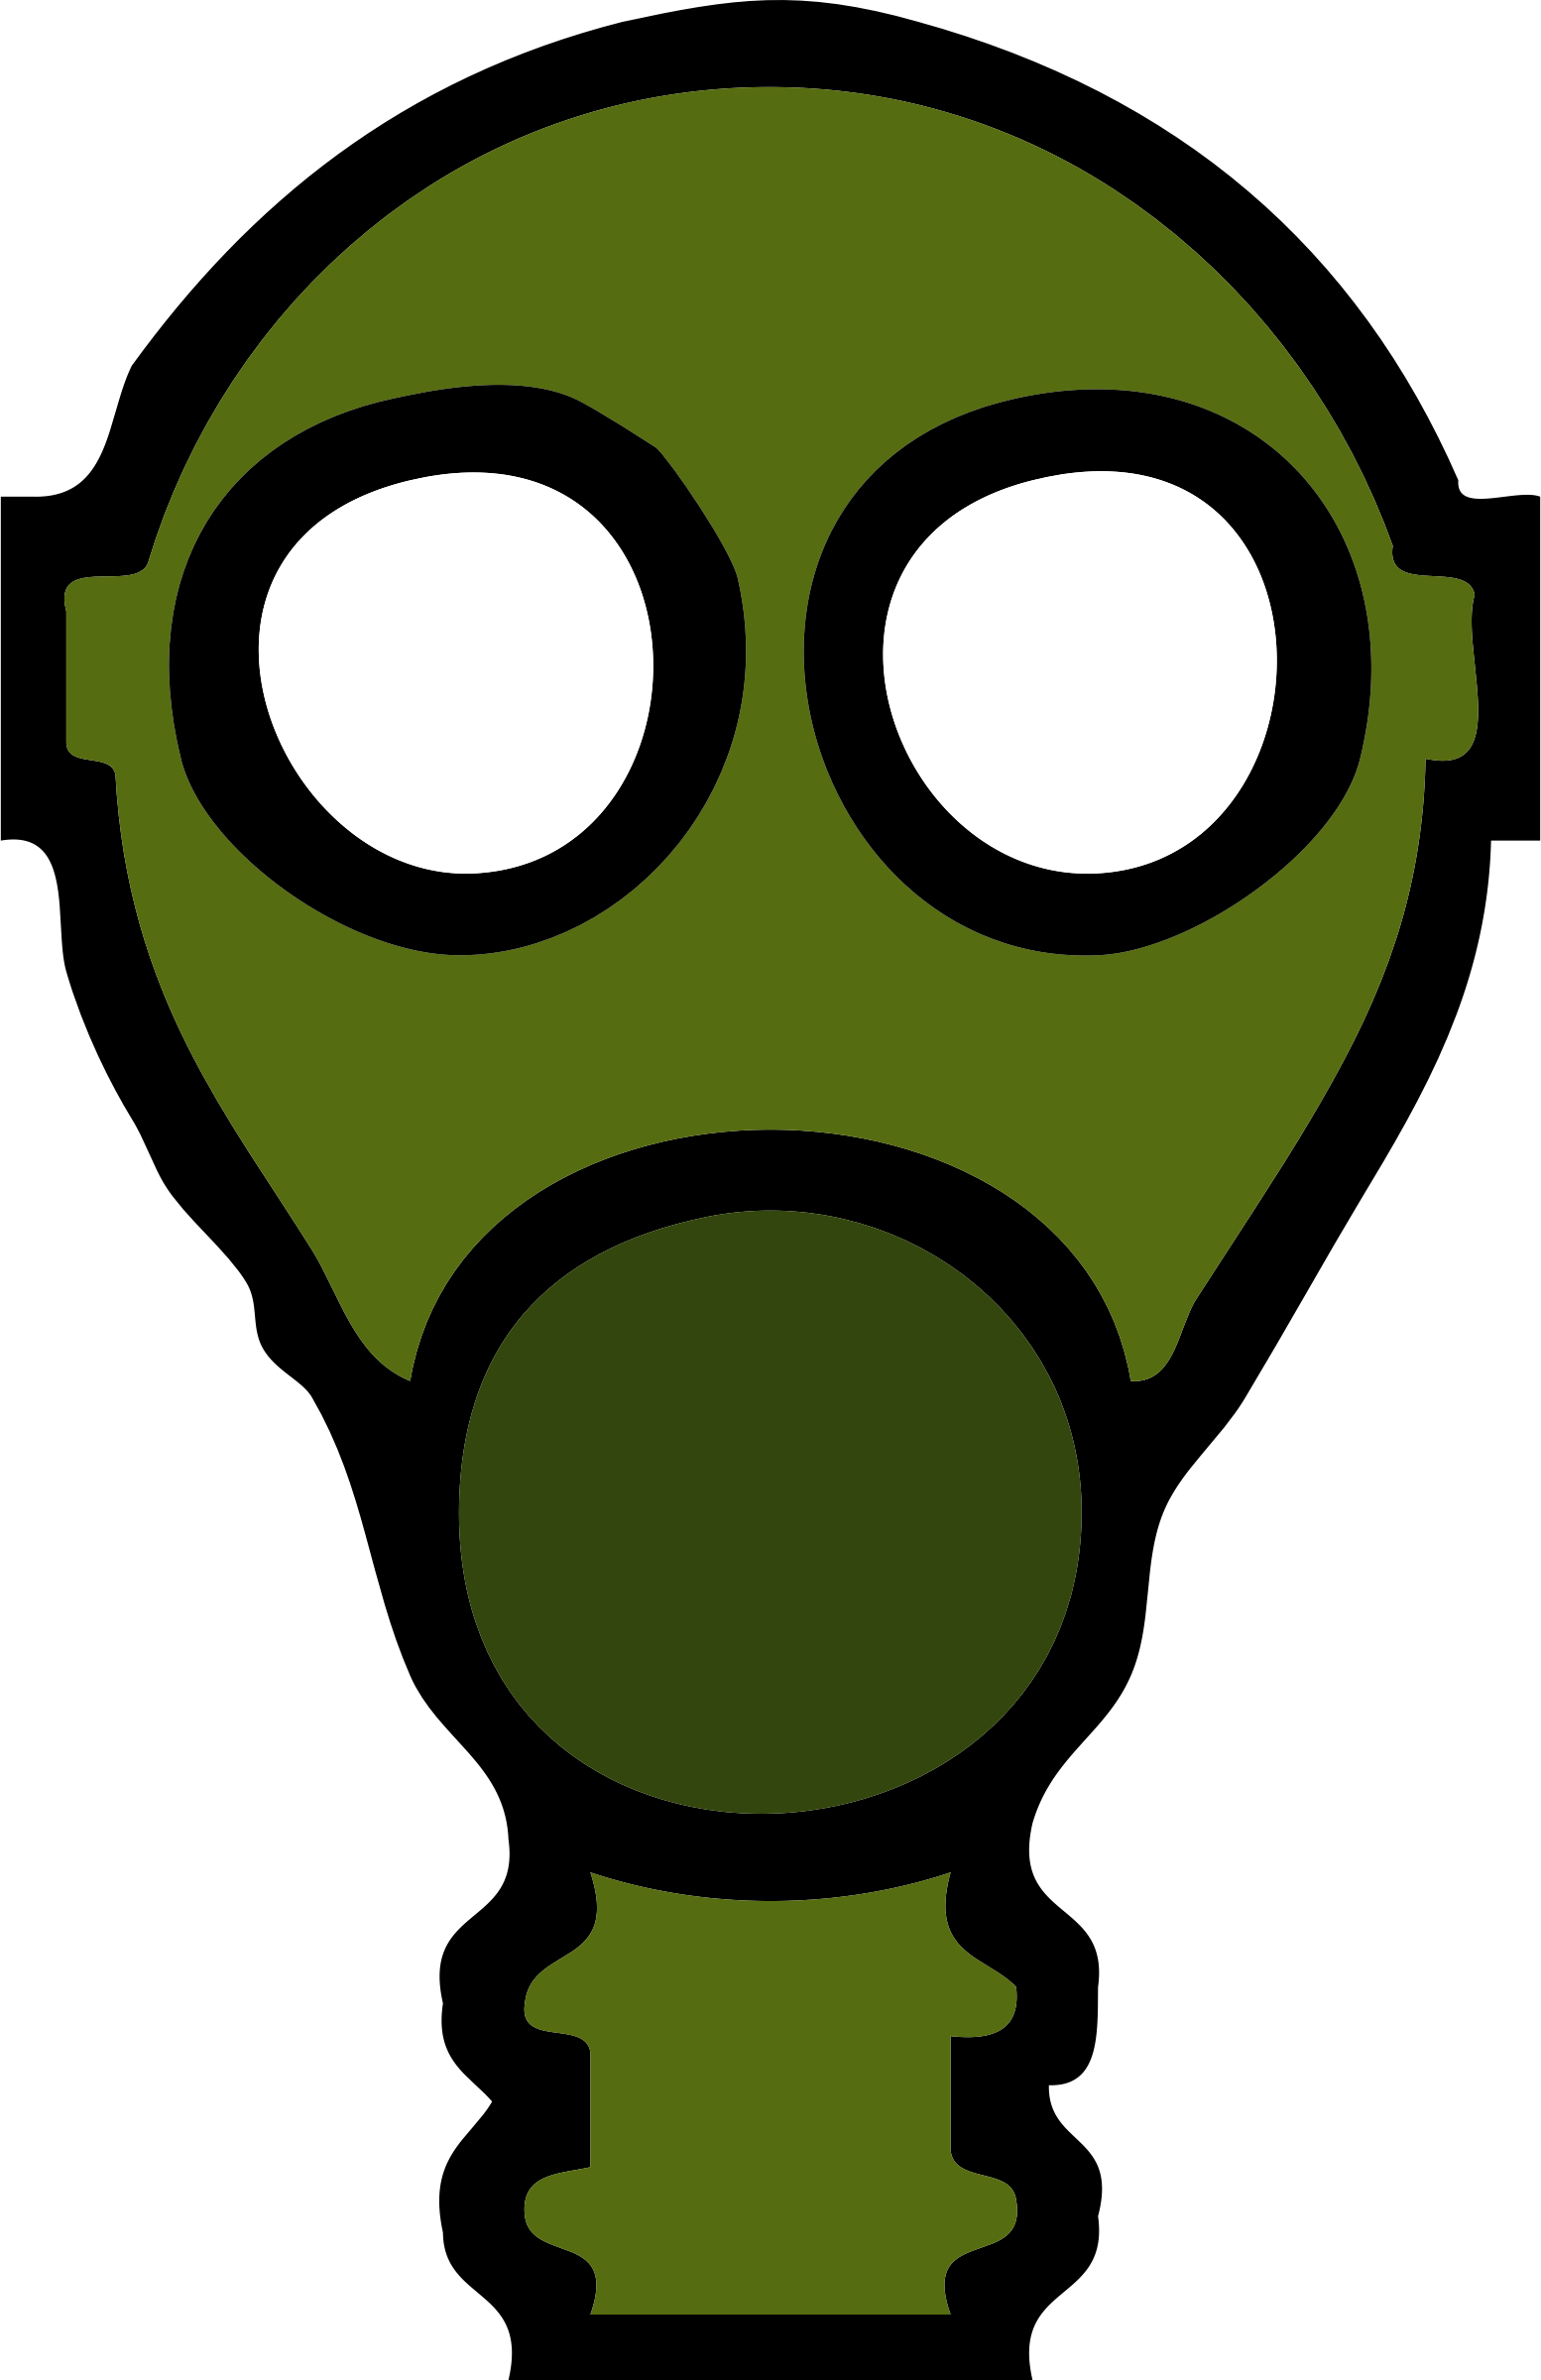 Gas Mask clipart ww1 Clipart mask mask gas gas